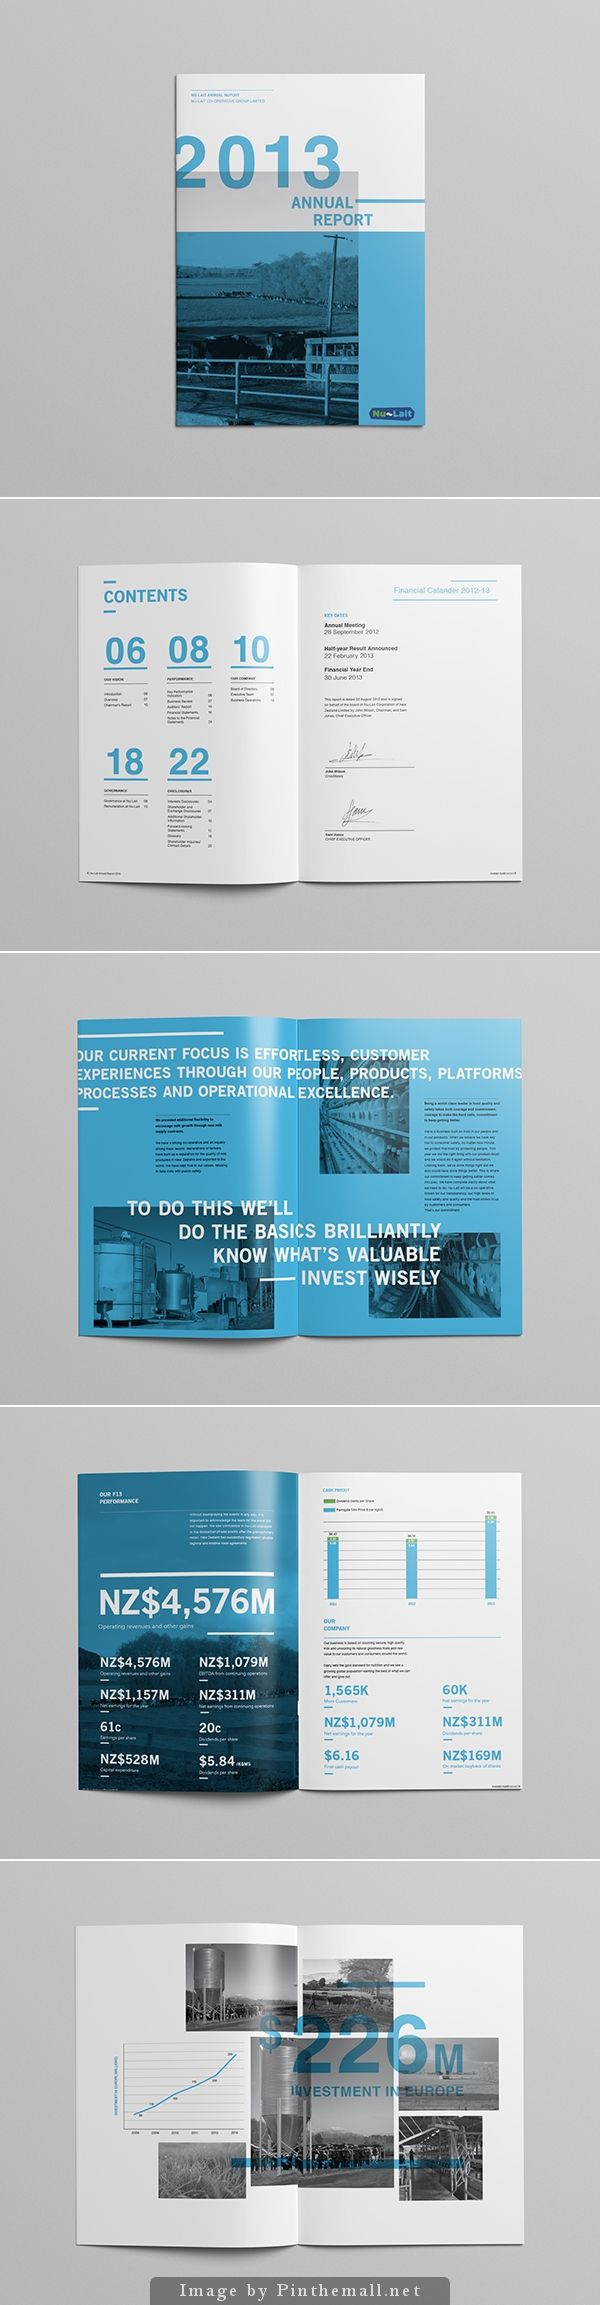 best ideas about annual report design report behance net gallery 19907745 nu